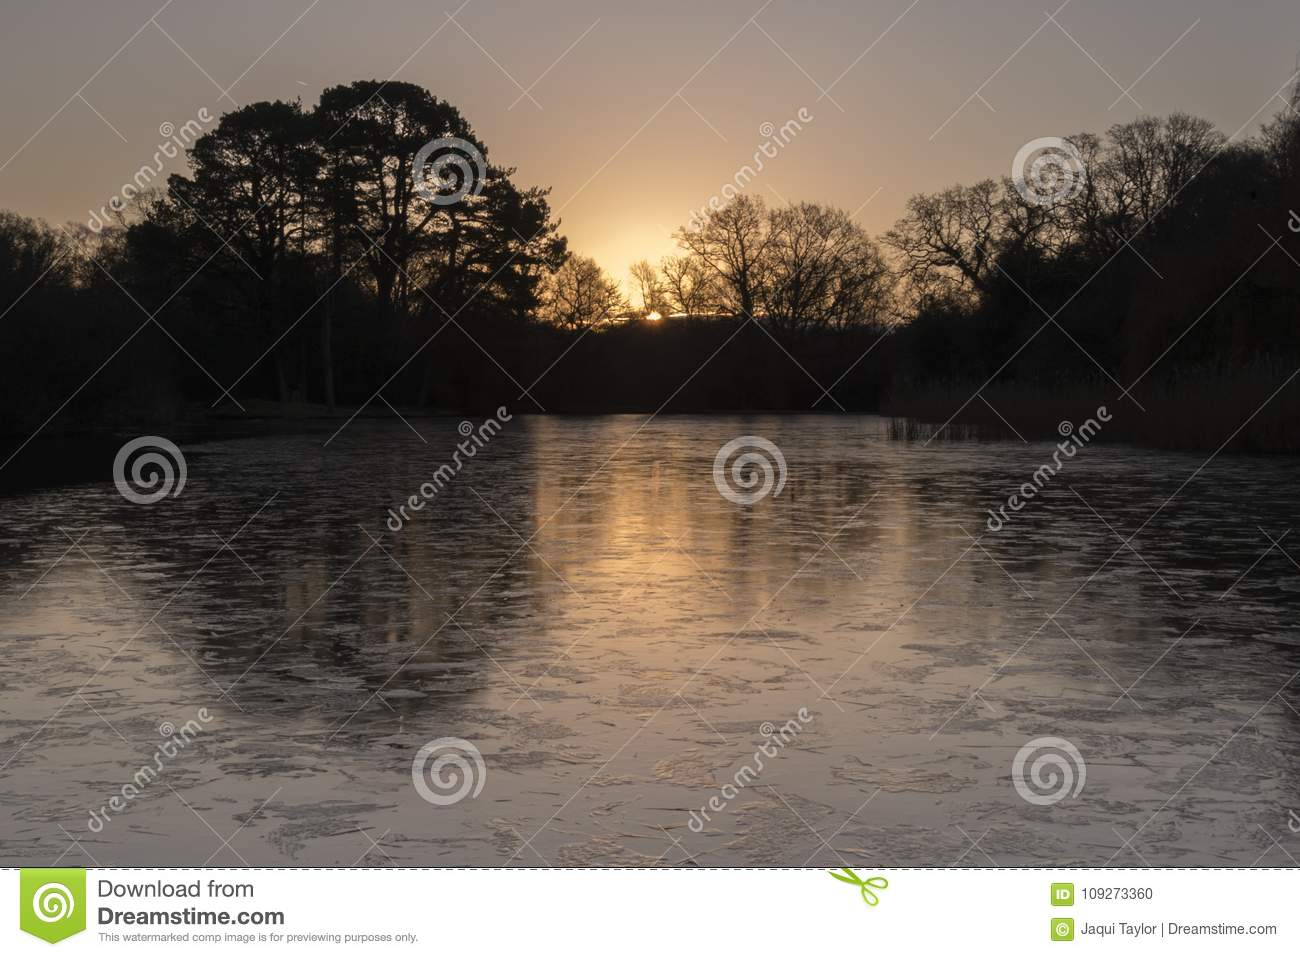 Sunrise on an icy morning at the Ornamental Pond, Southampton Common